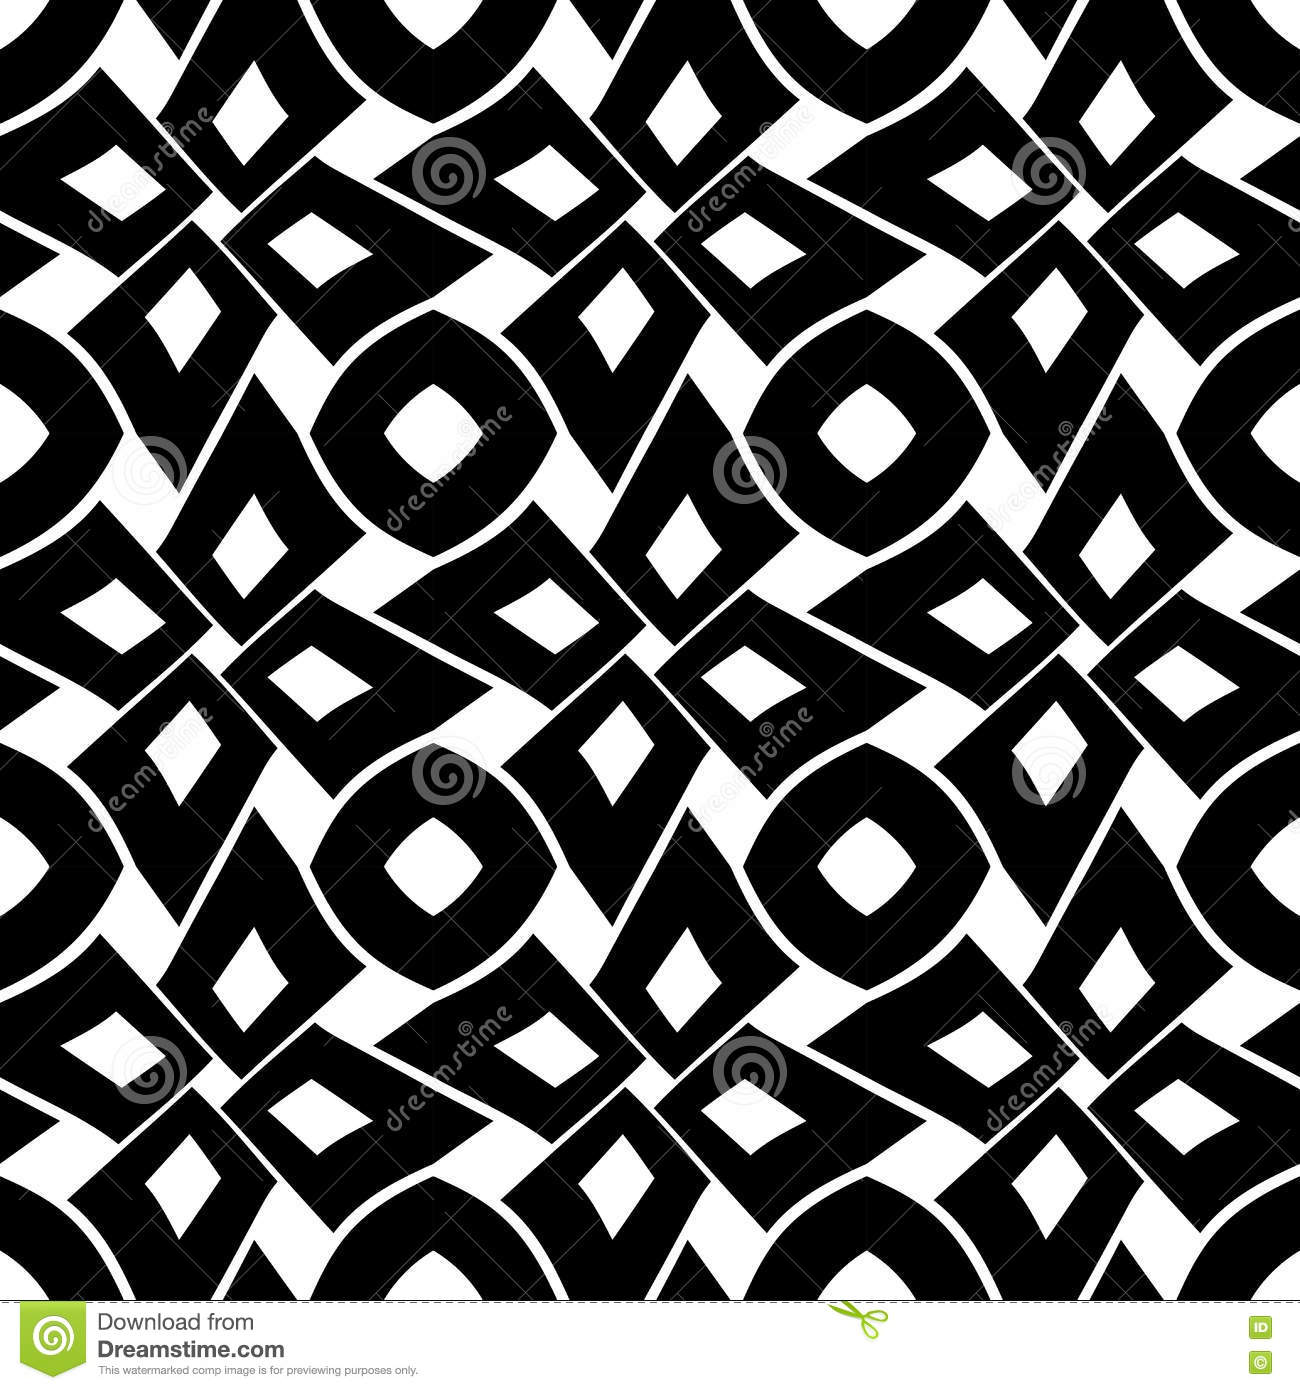 Modern bed sheets pattern - Black Bed Sheets Pattern Royalty Free Vector